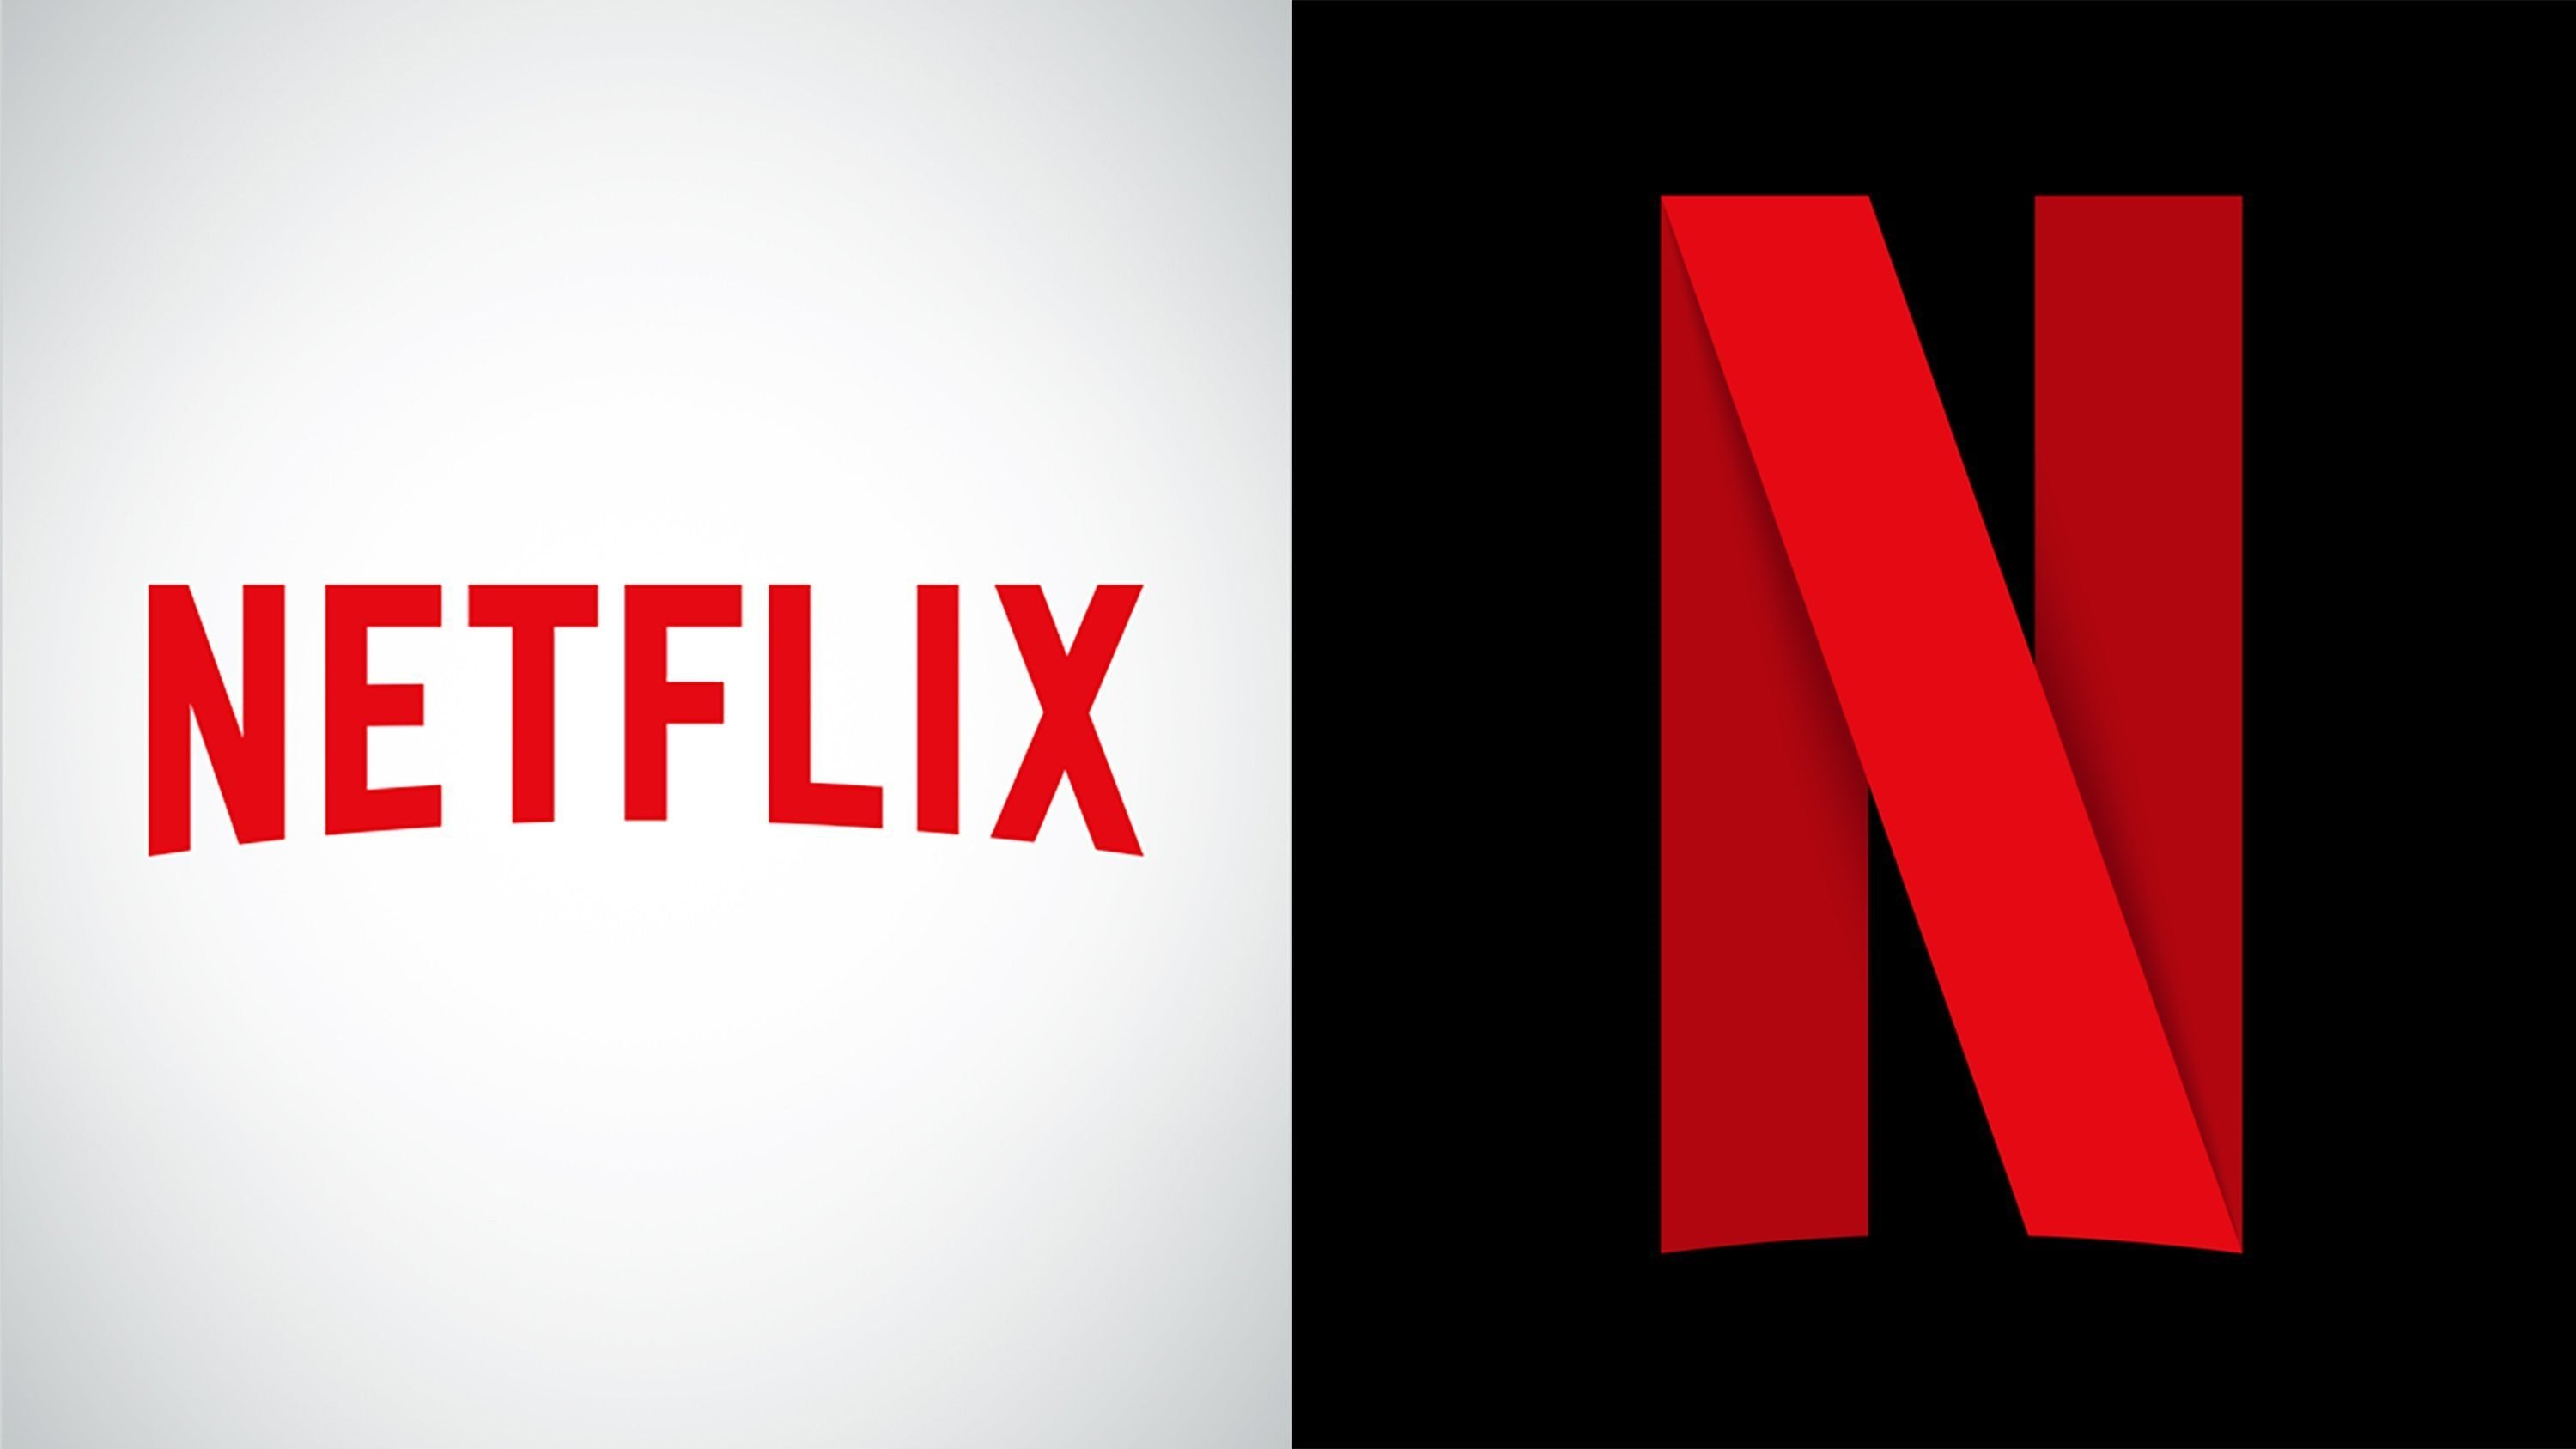 New Netflix button proves hit with binge watchers